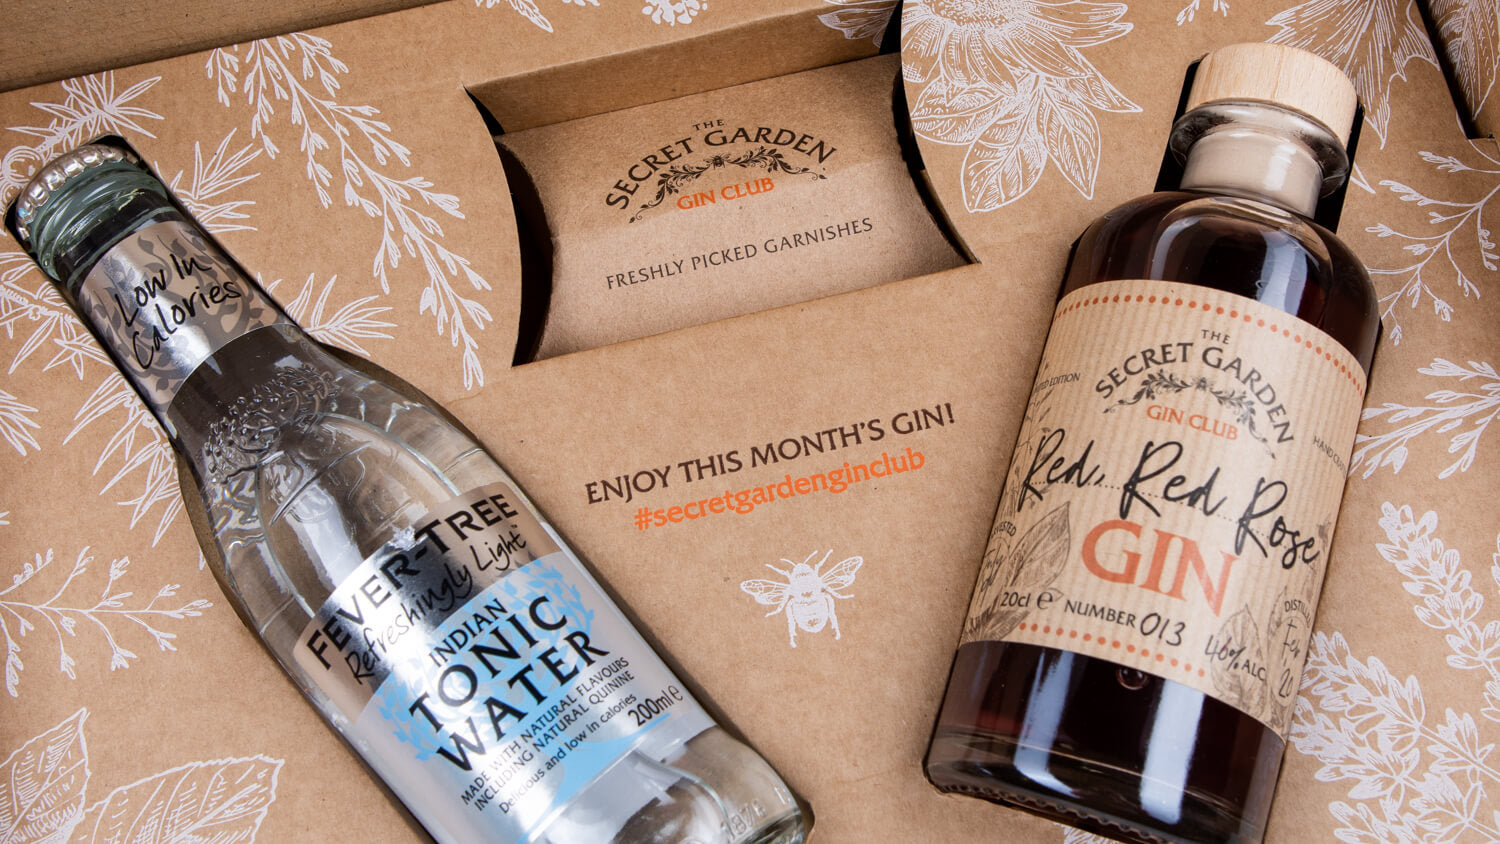 The Old Curiosity Gin Club - Monthly Gin Subscriptions